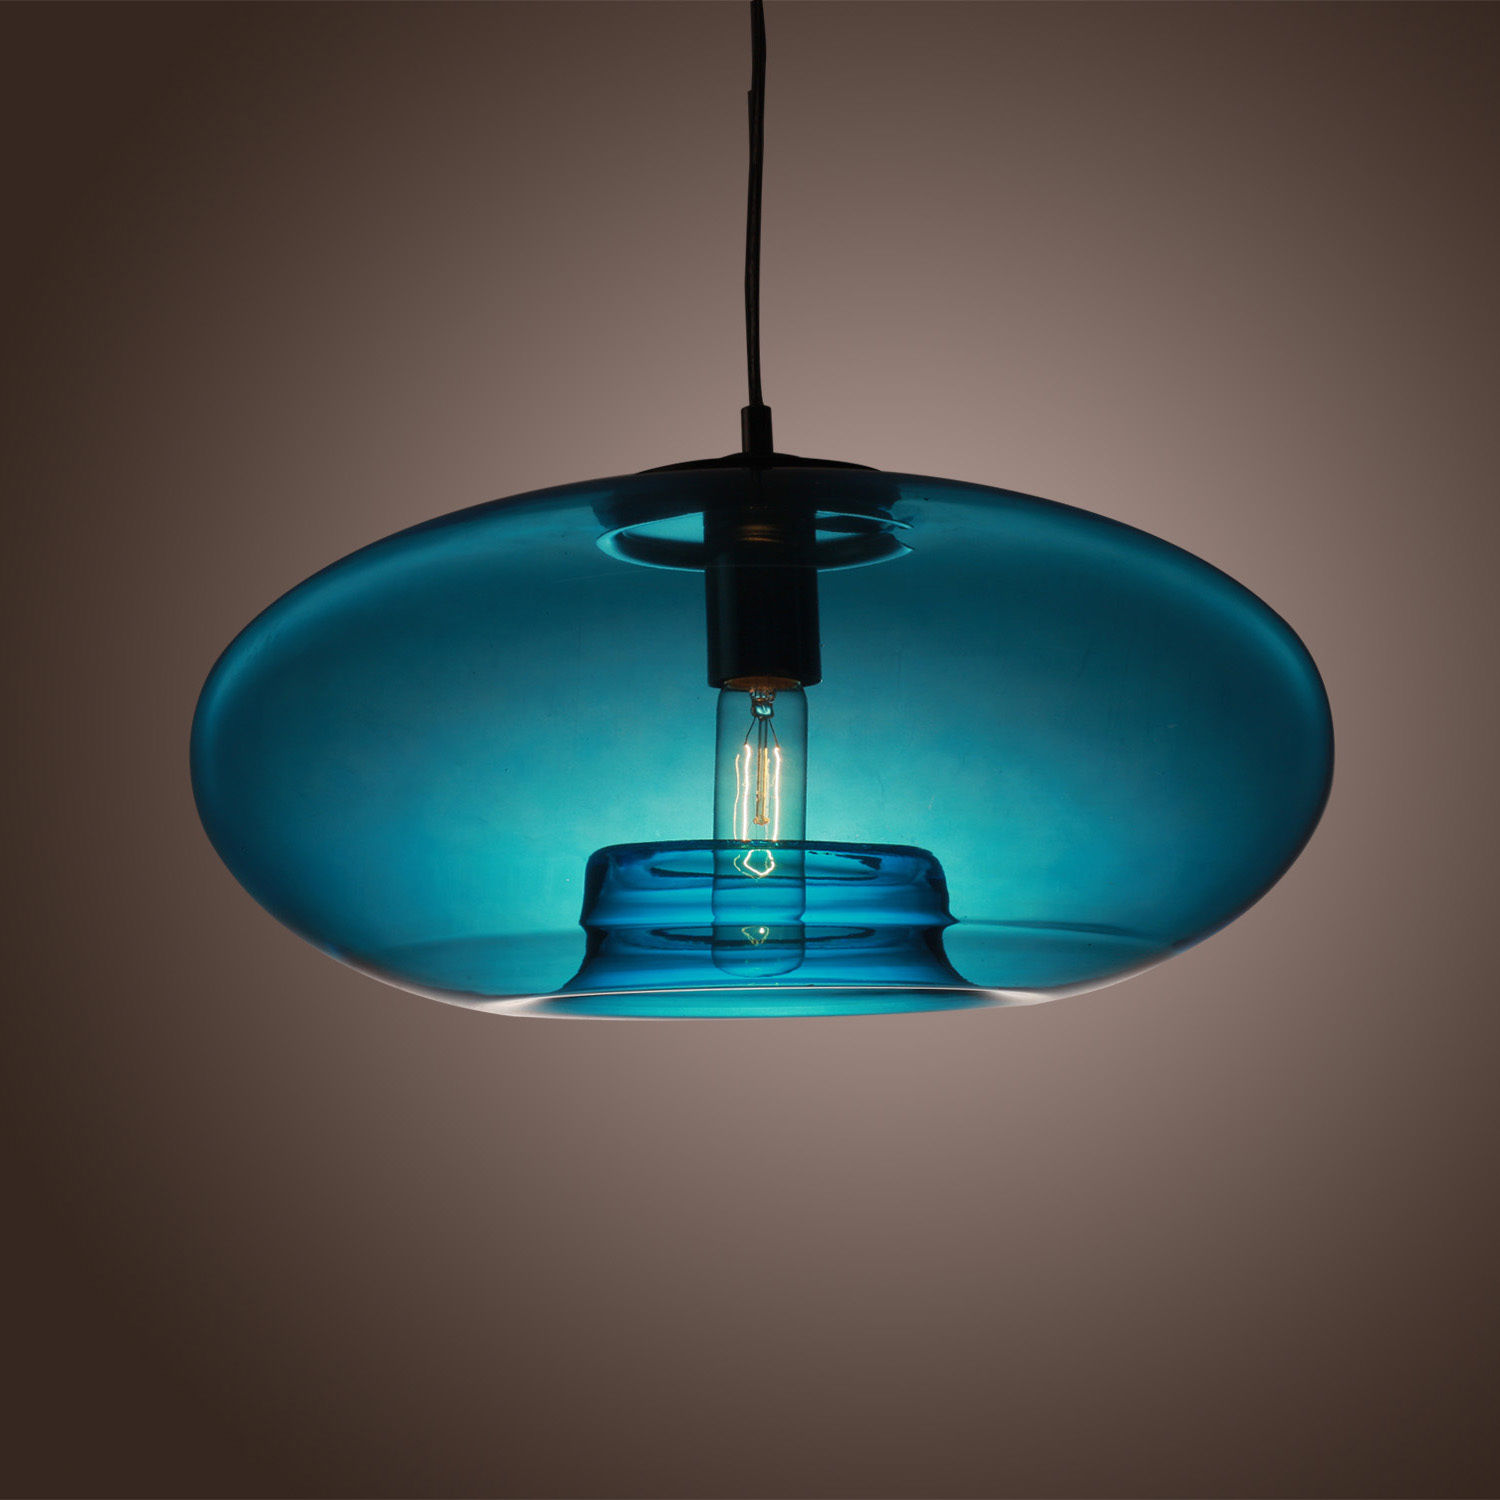 Hanging Lamp Light: Blue Glass Pendant Lamp Modern Bubble Design Ceiling